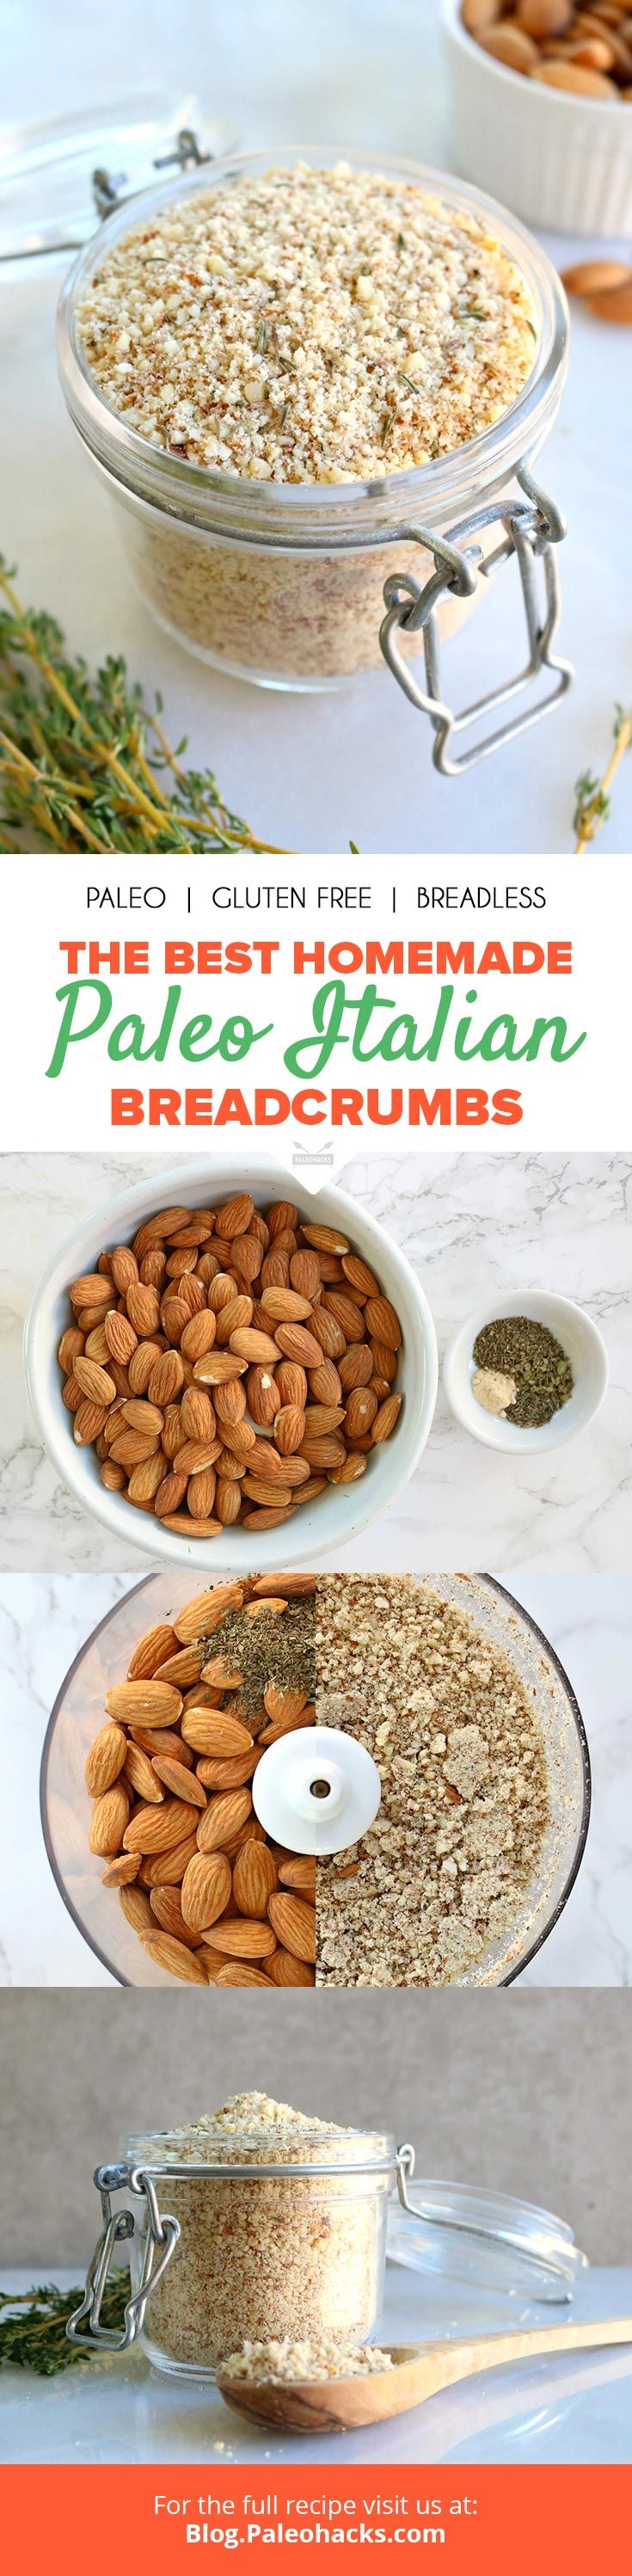 """Herbed raw almonds create go-to """"breadcrumbs"""" you can coat on chicken tenders, add to meatballs or on top of Paleo mac-n-cheese! Get the full recipe here: http://paleo.co/paleobreadcrumbs"""